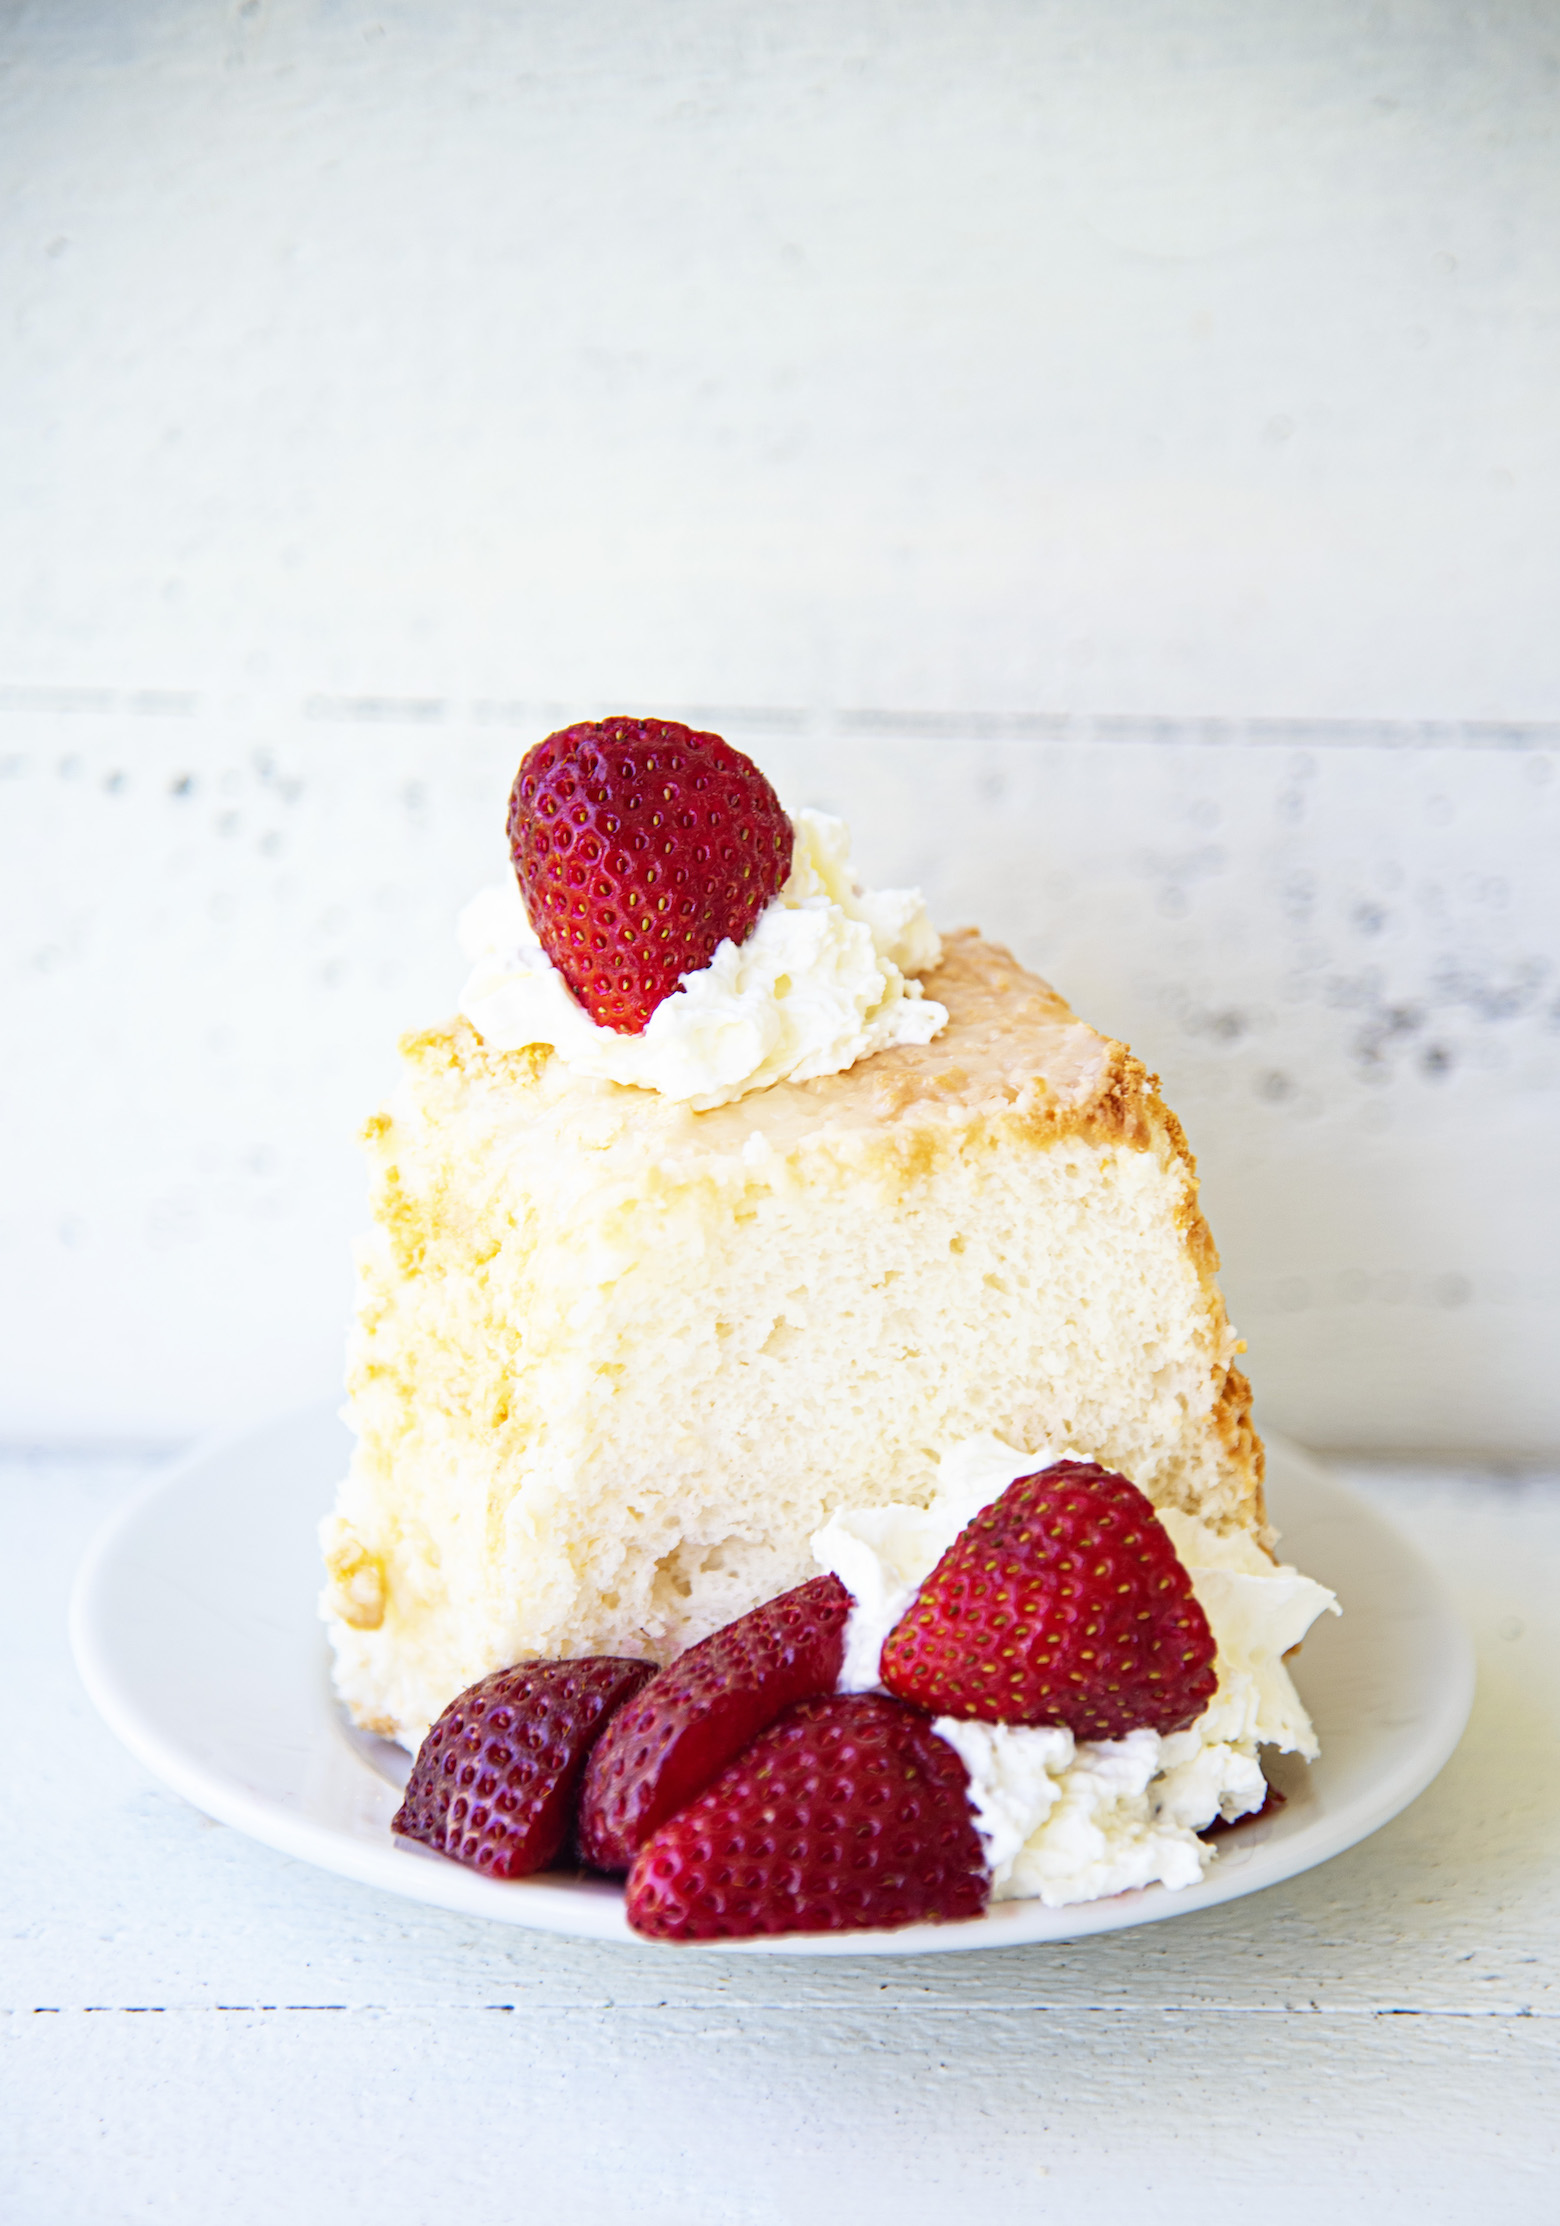 Slice of Key Lime Angel Food Cake with whipped cream and strawberries